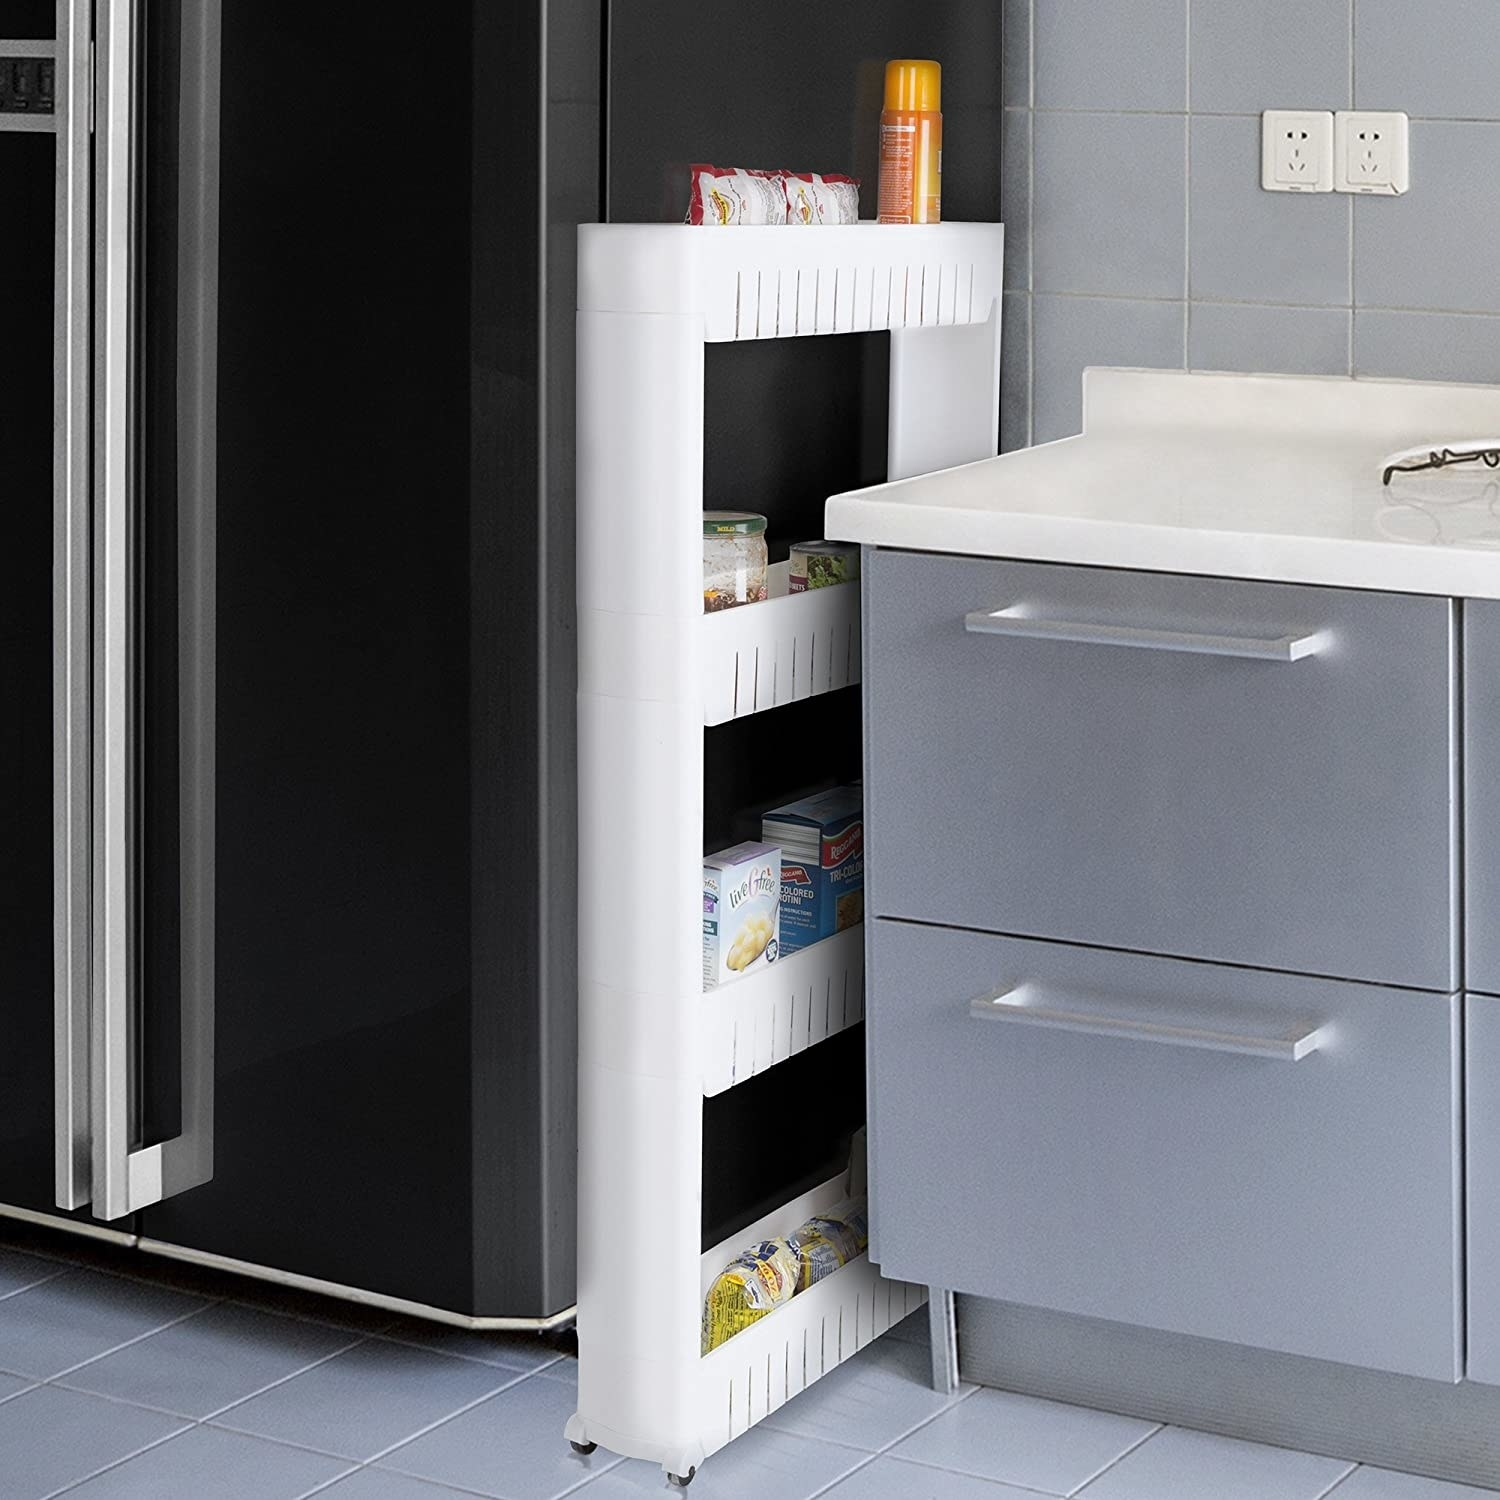 A slim white four-shelved organizer with wheels between a fridge and a counter